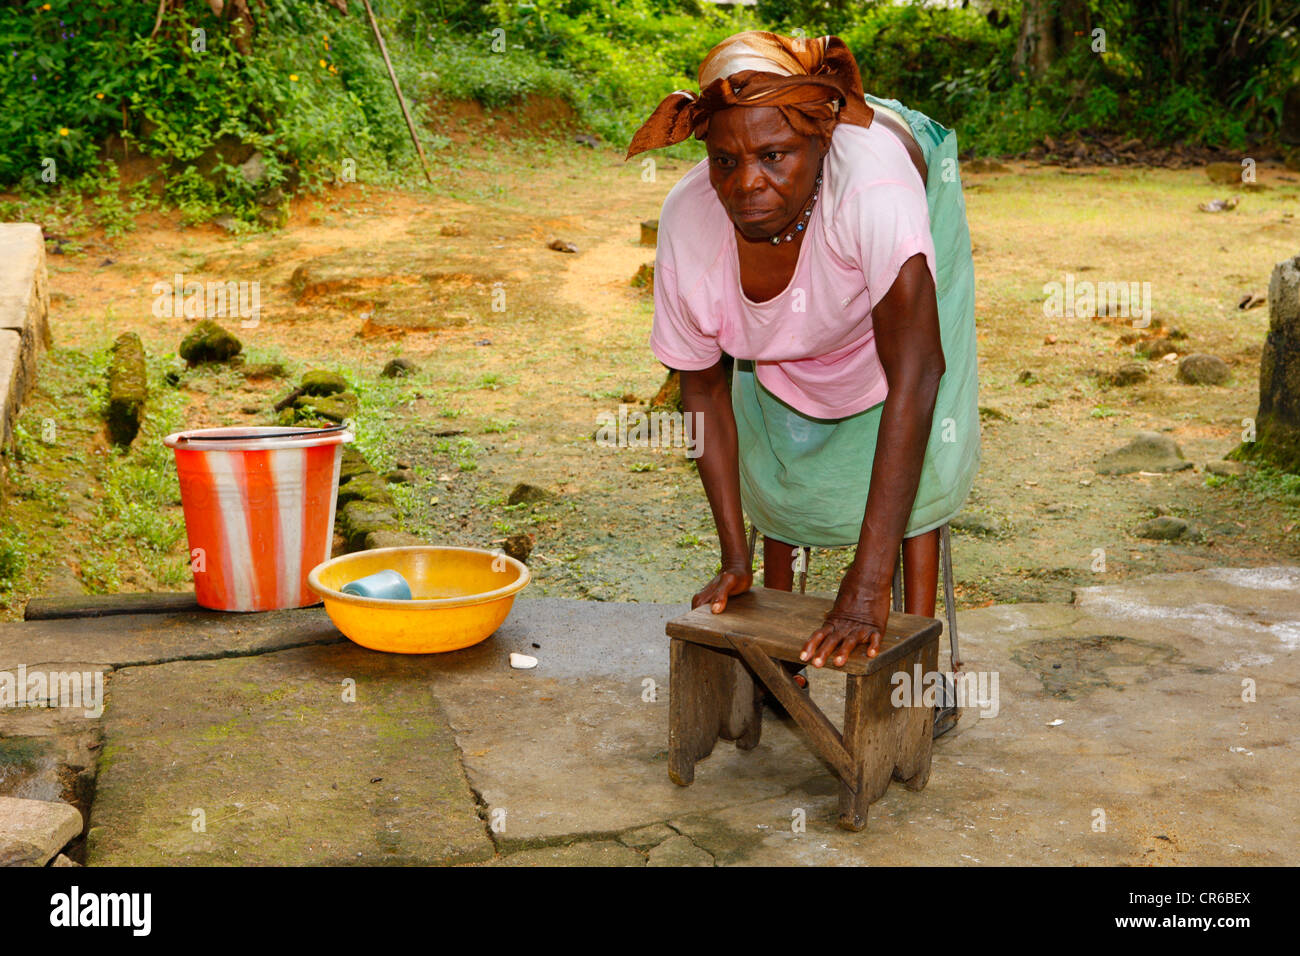 Leper using stool as walker, TB and leprosy centre, Manyemen, Cameroon, Africa - Stock Image